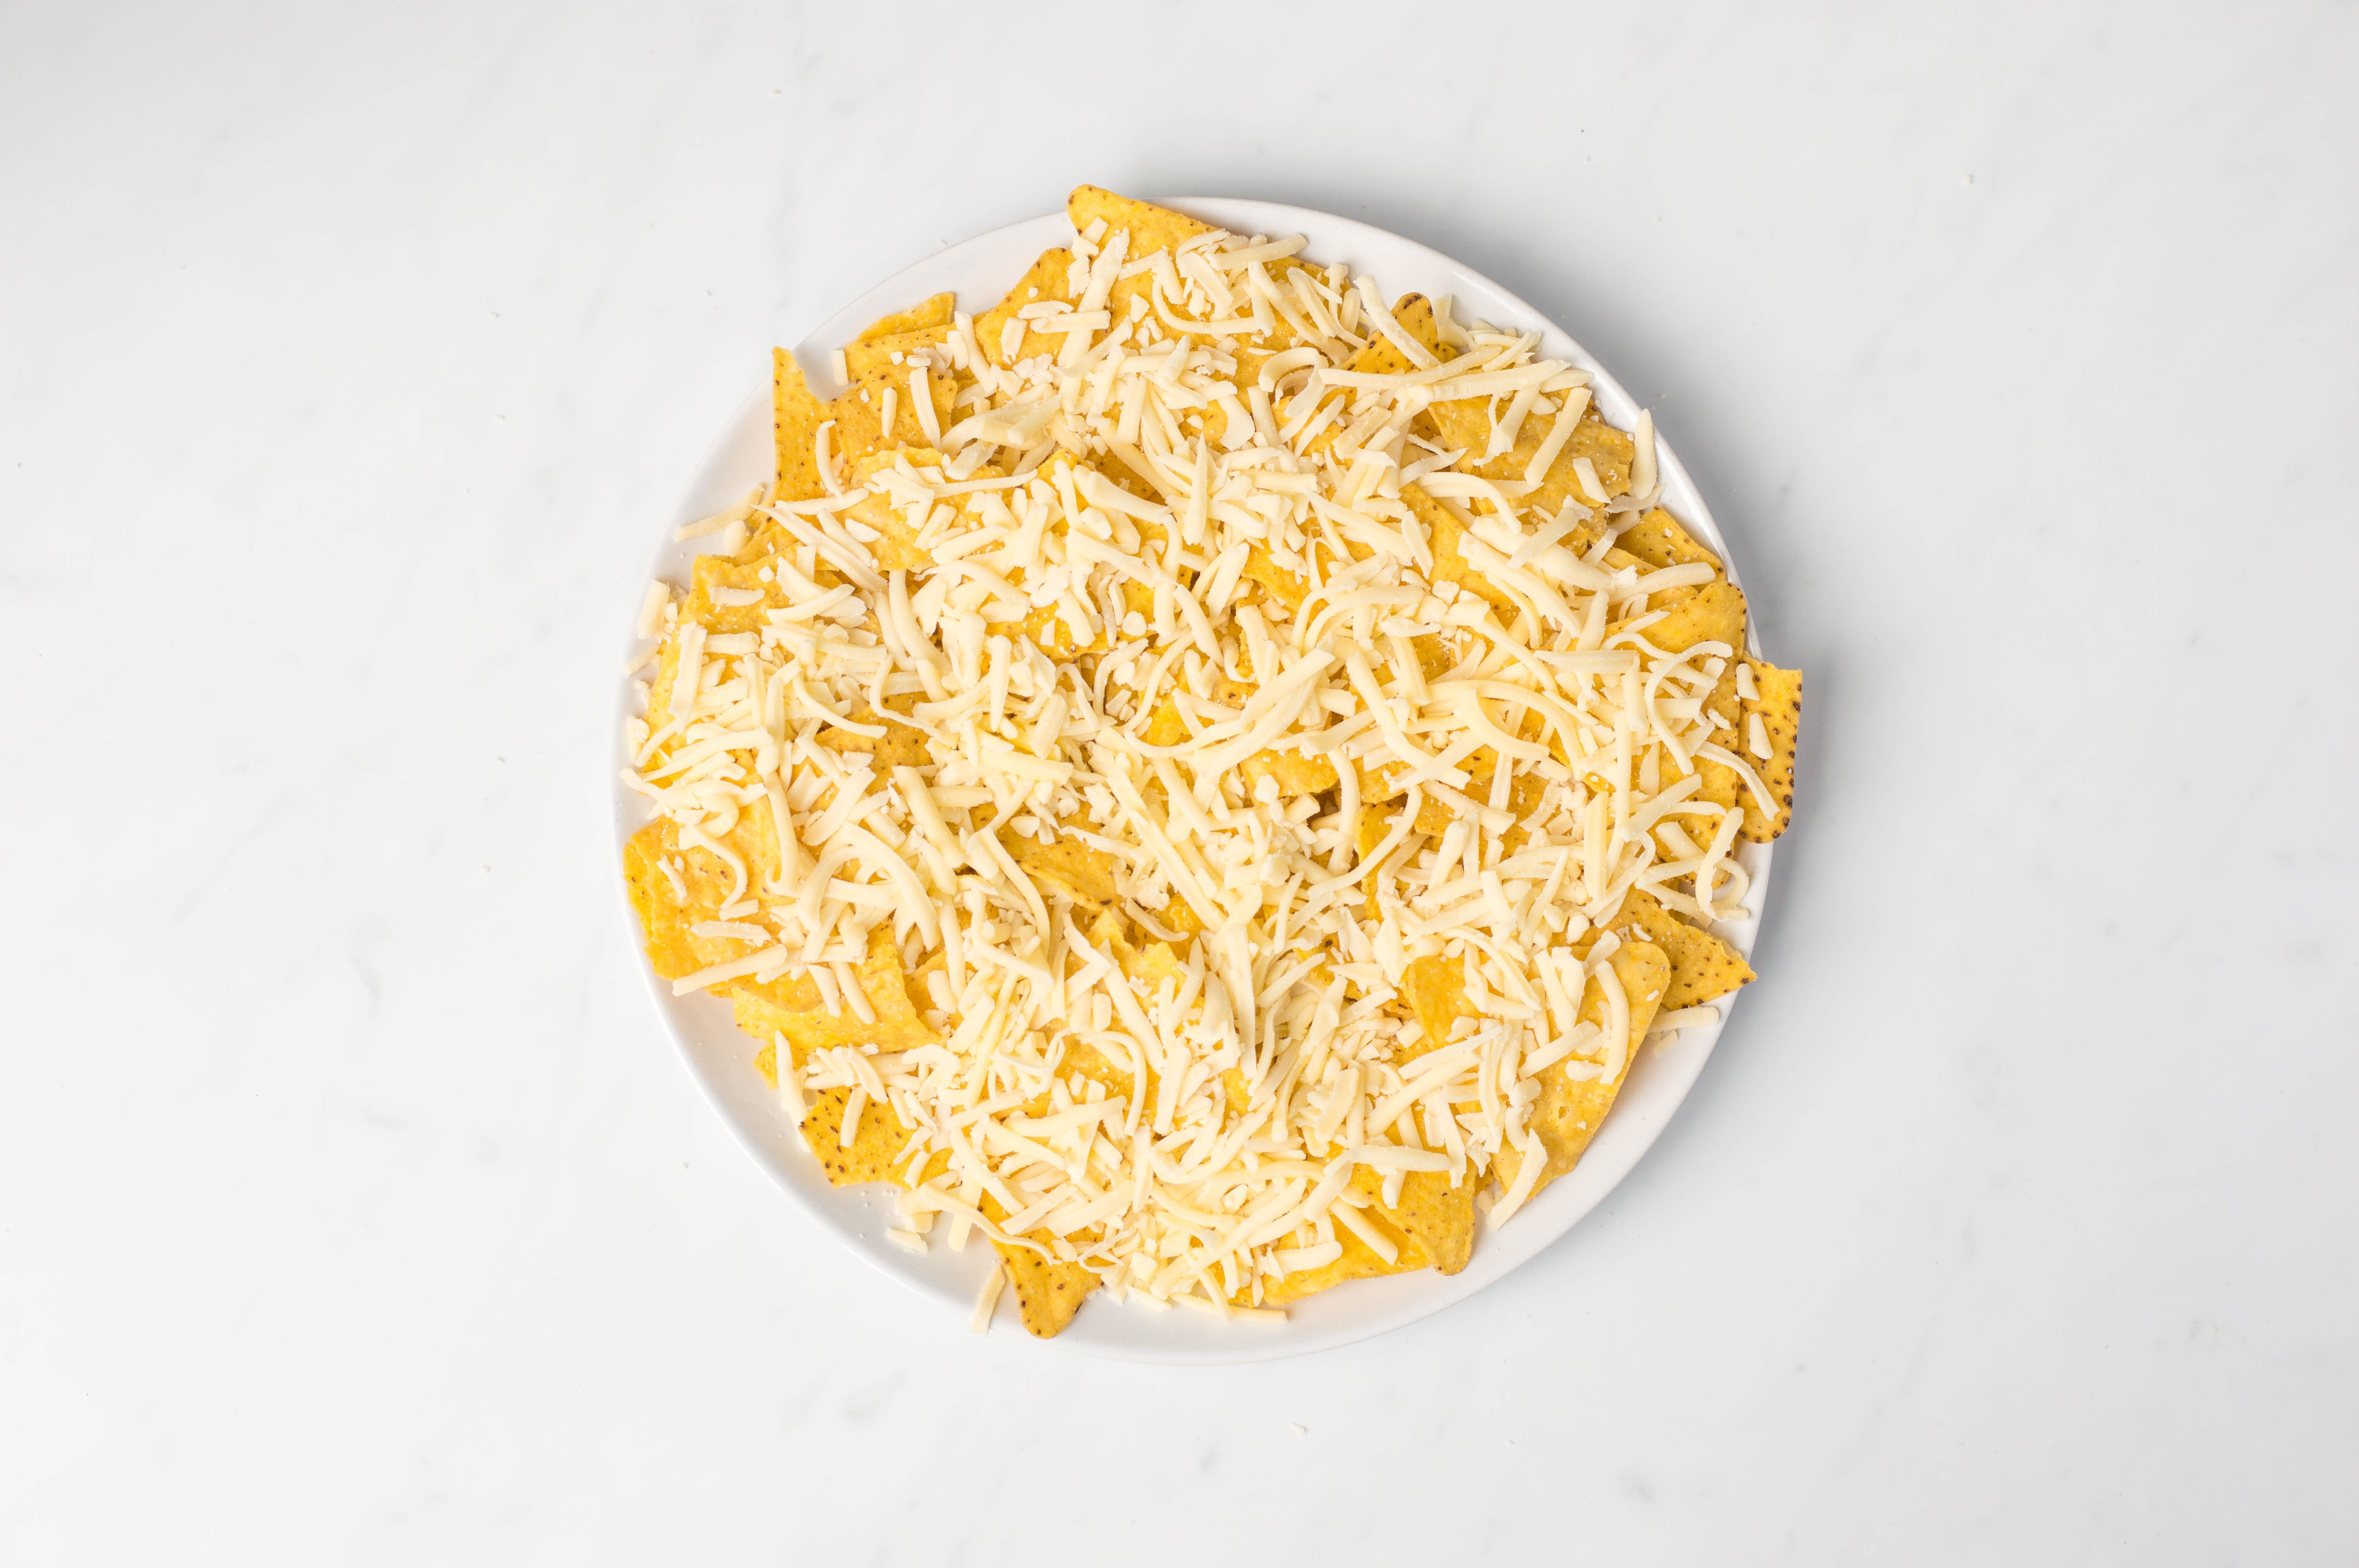 Sprinkle cheese over chips